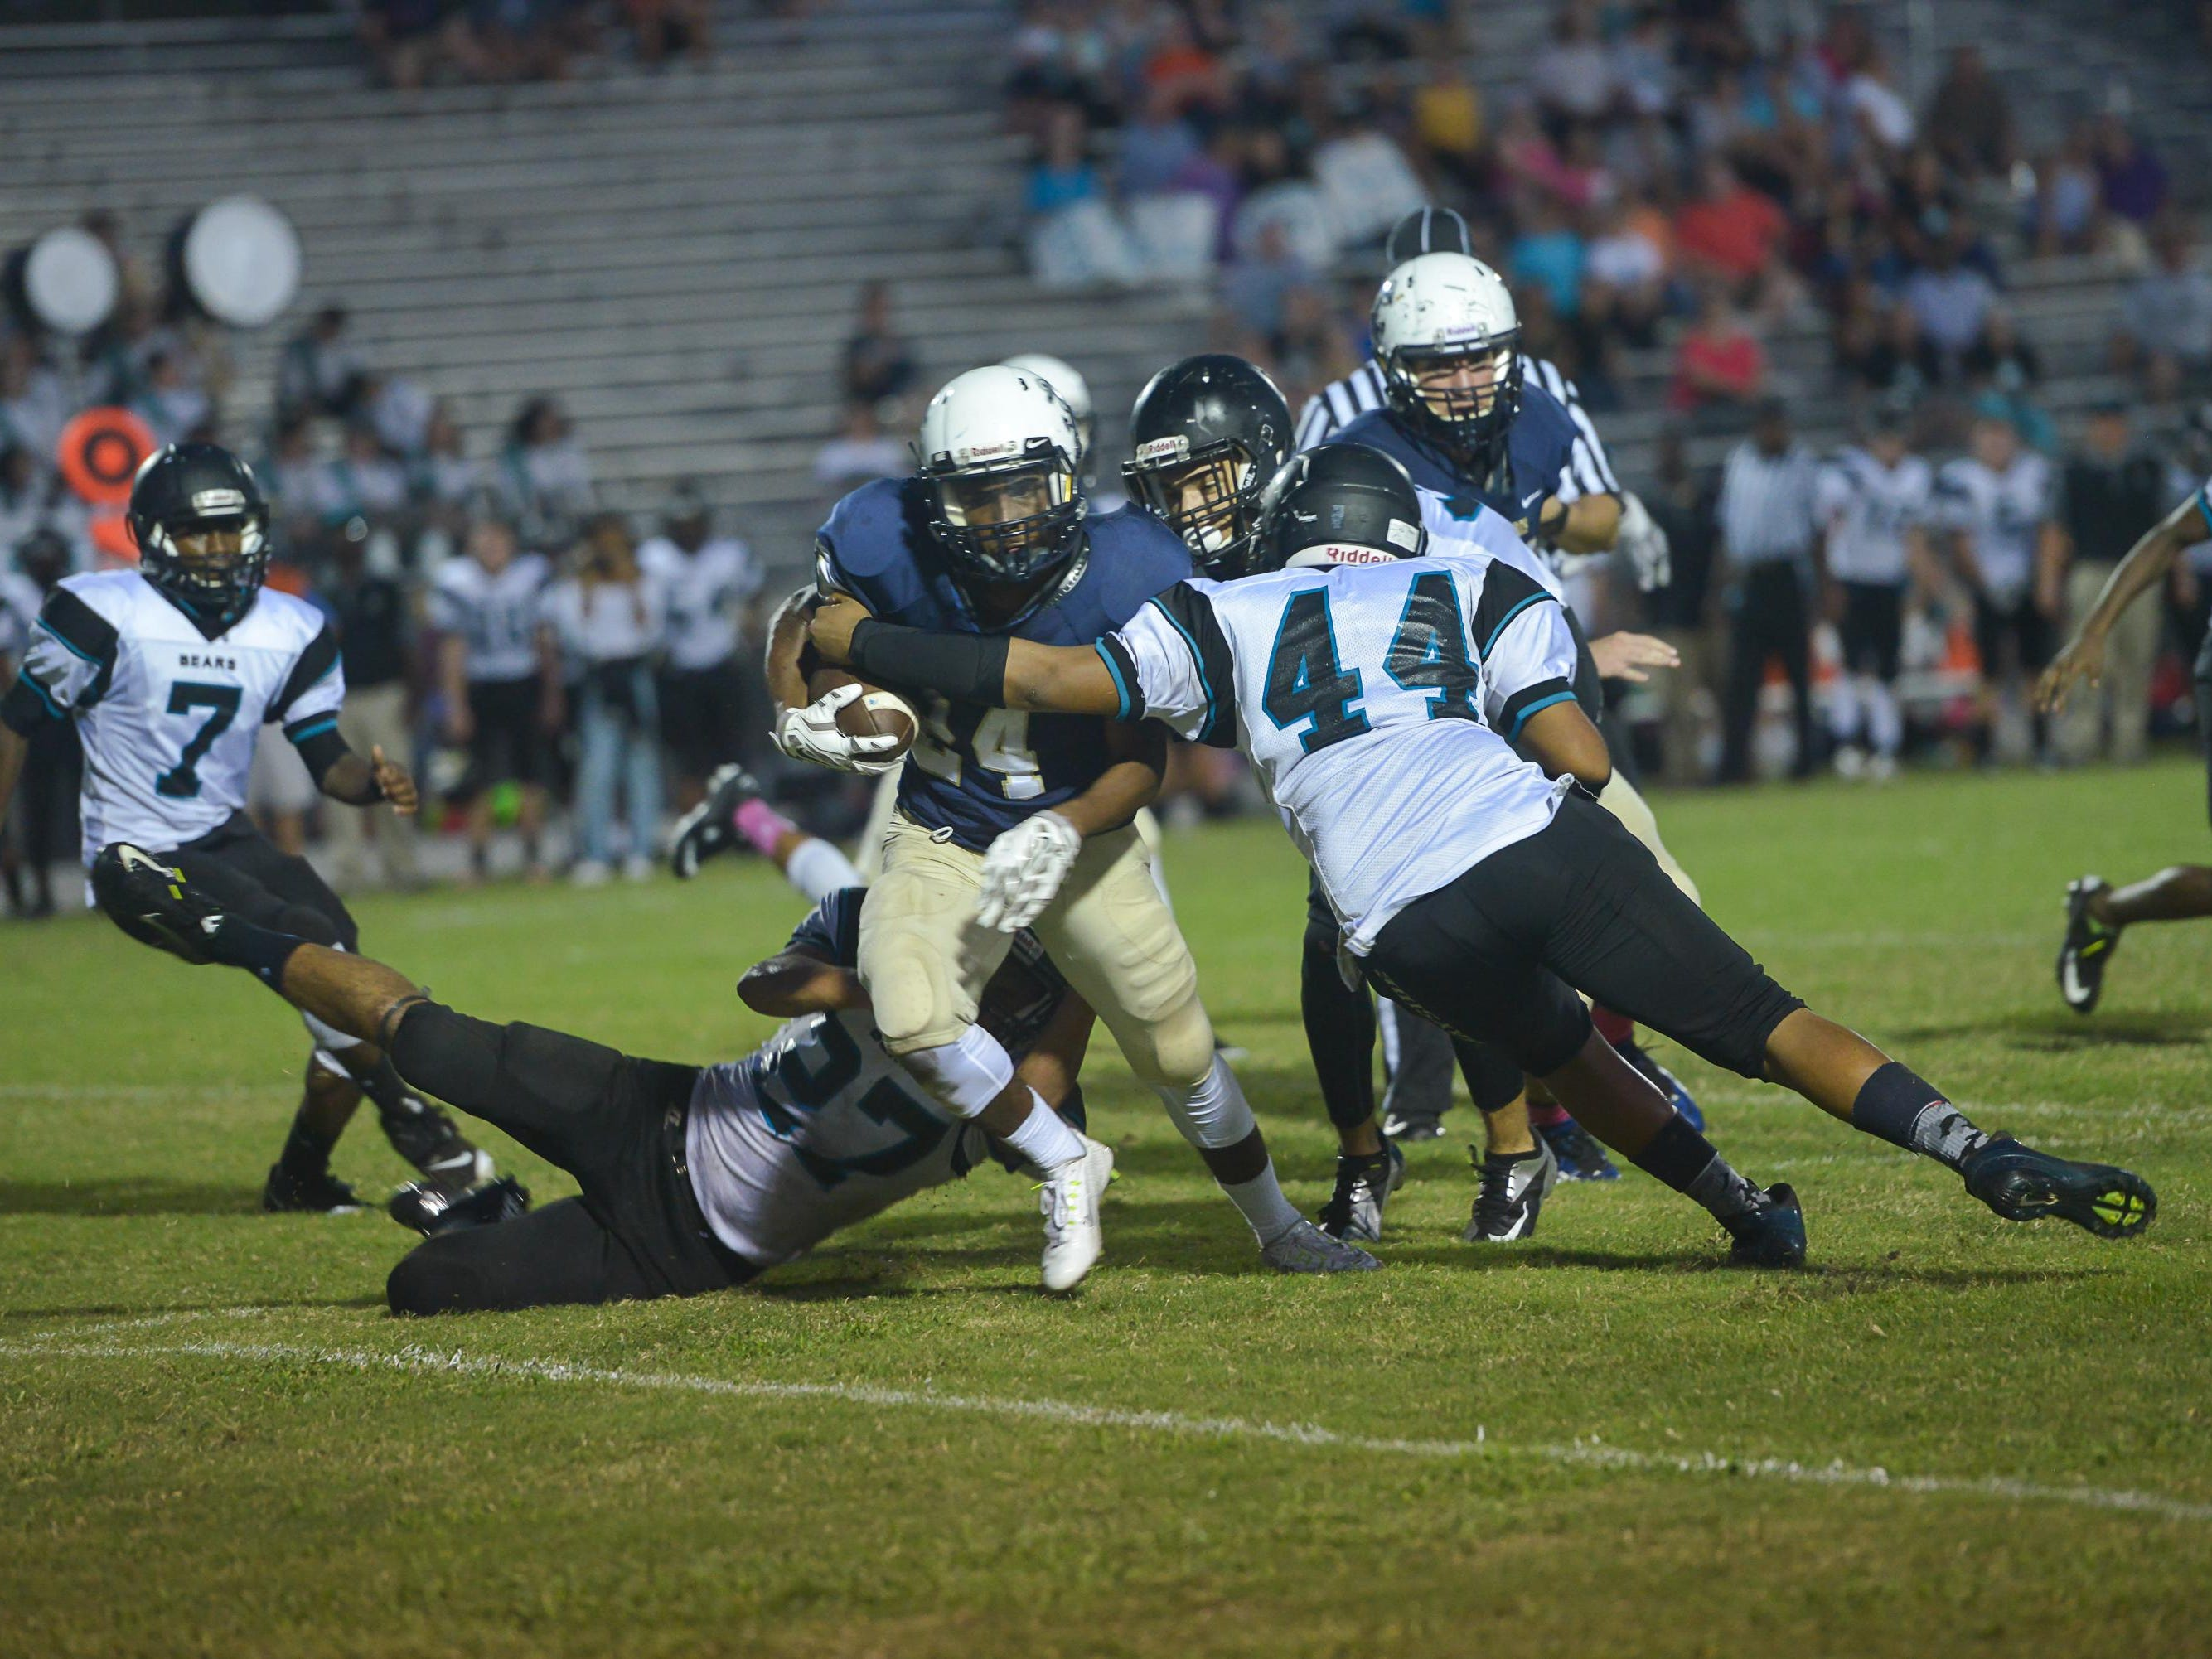 The Eau Gallie Commodores take on the Bayside Bears. (Photo by Amanda Stratford, for FLORIDA TODAY)